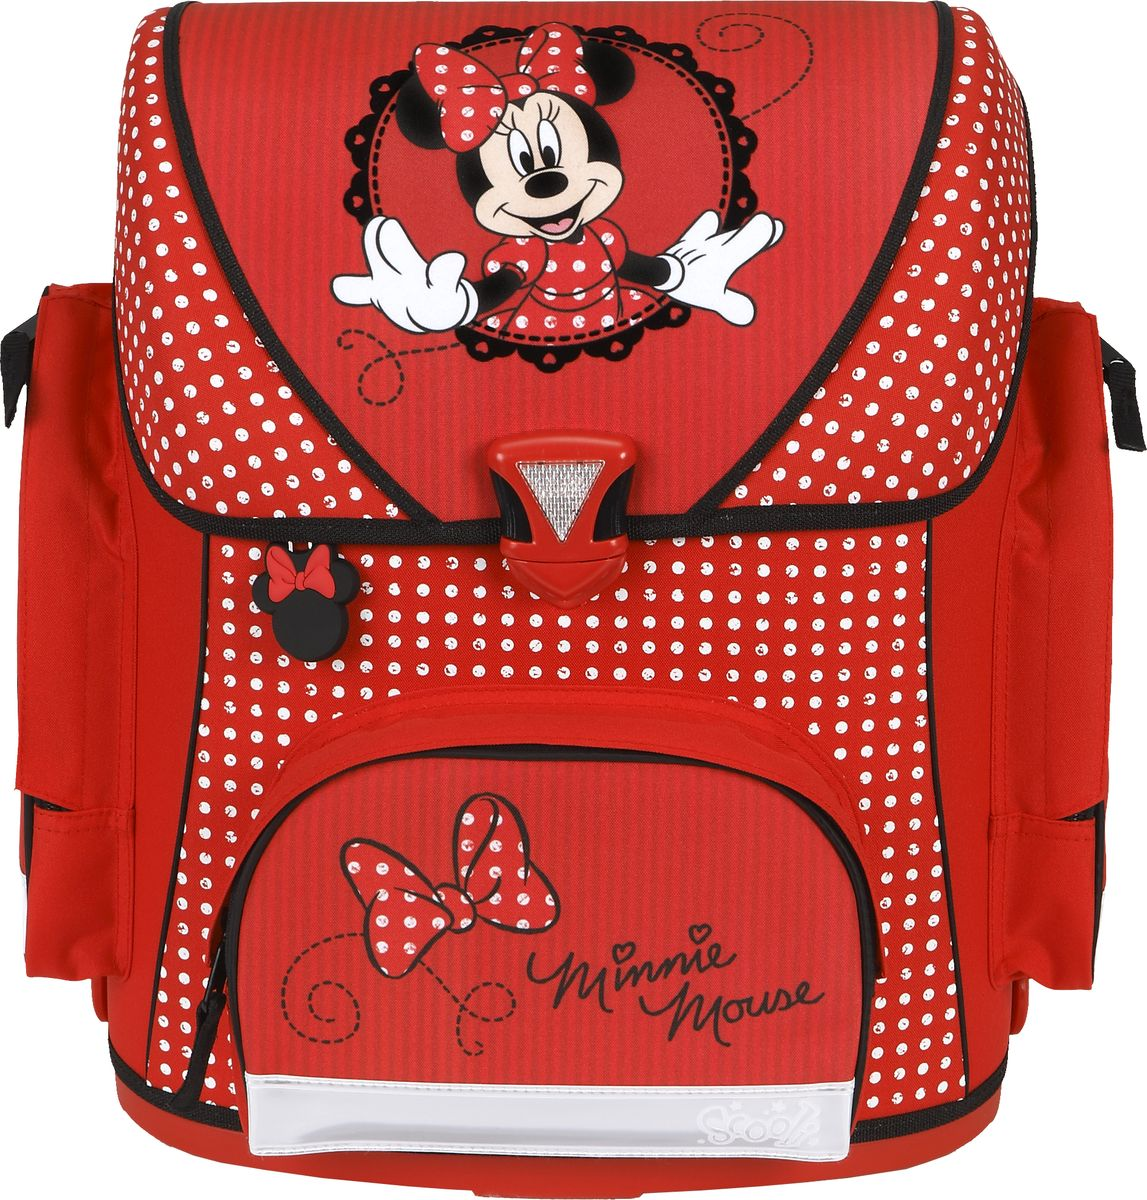 Scooli Ранец школьный Minnie Mouse школьный ранец kinderline international minnie mouse mmcb ut1 988m